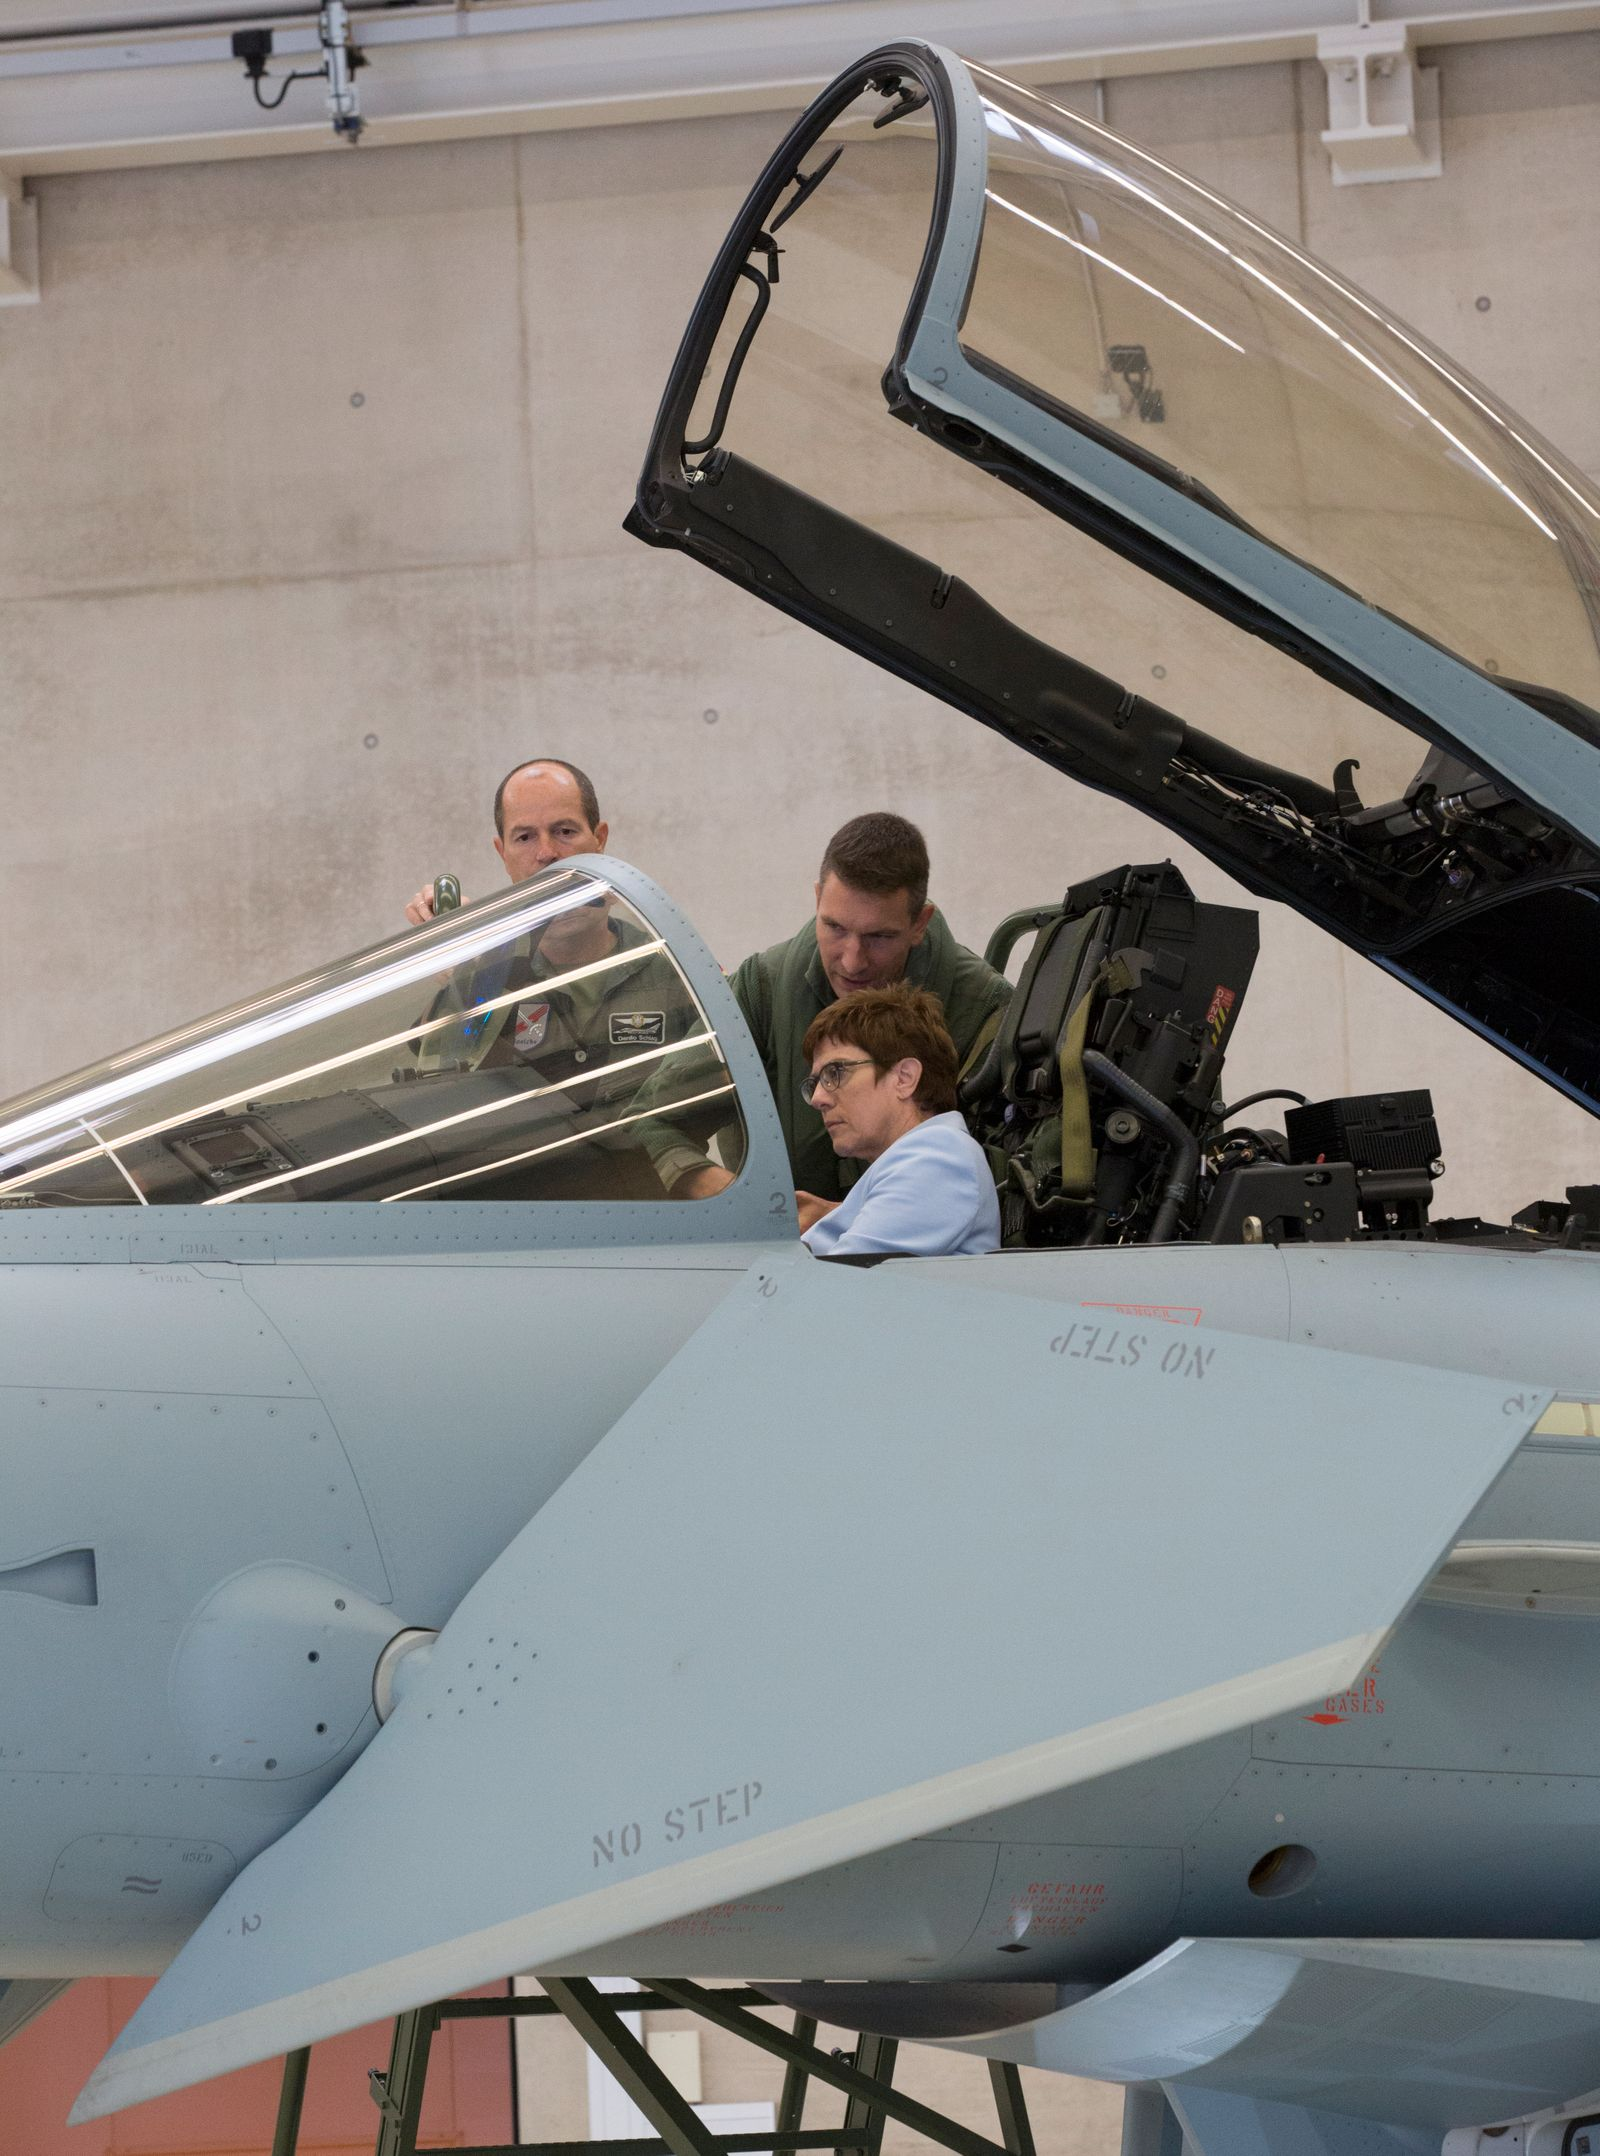 Inaugural isit of the Federal Minister of Defense Annegret Kramp Karrenbauer (CDU) to the tactical air force Squadron 31